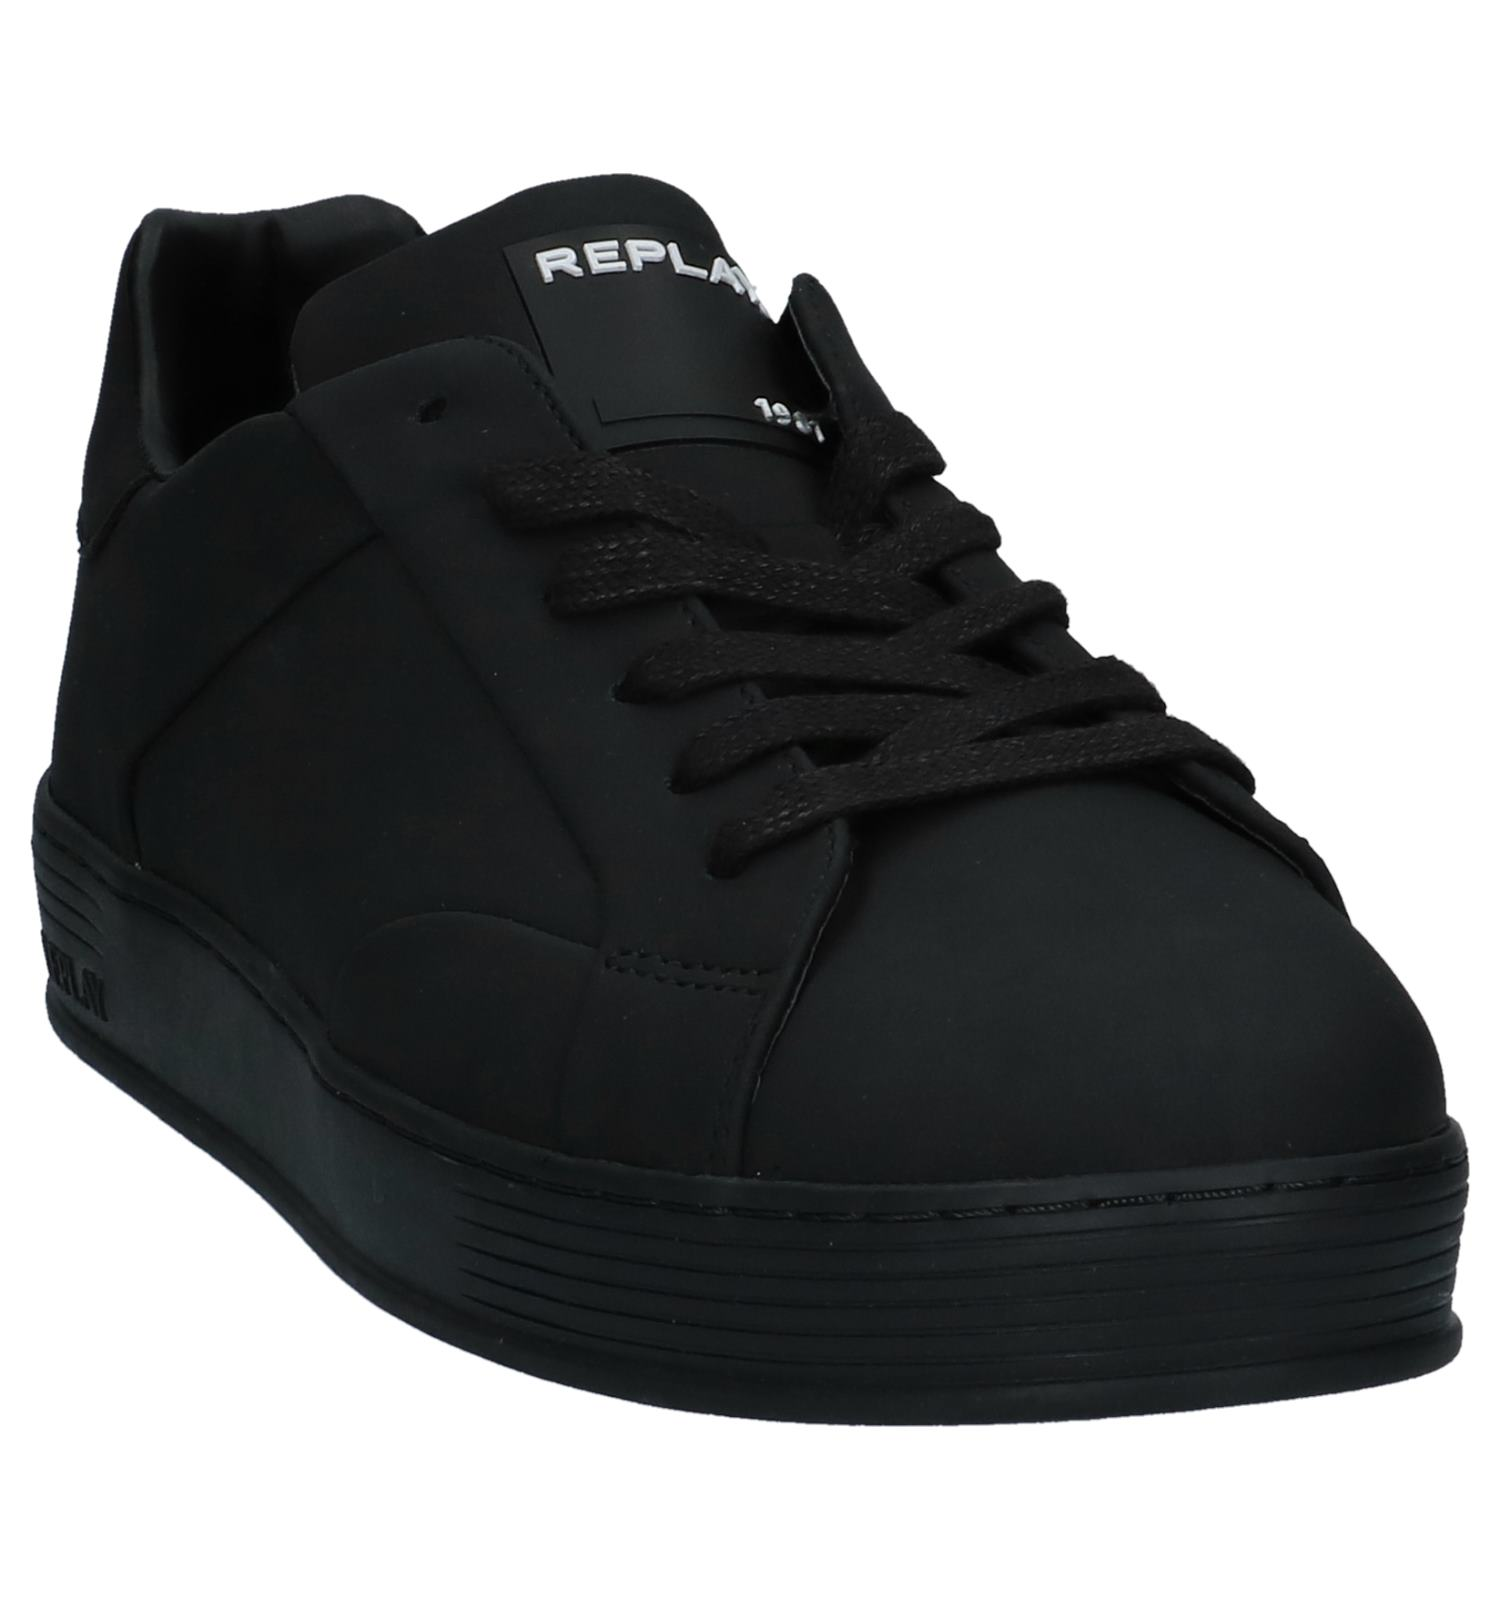 Casual Veterschoenen Replay Replay Veterschoenen Zwarte Council Council Zwarte Casual Ygv76fbyI